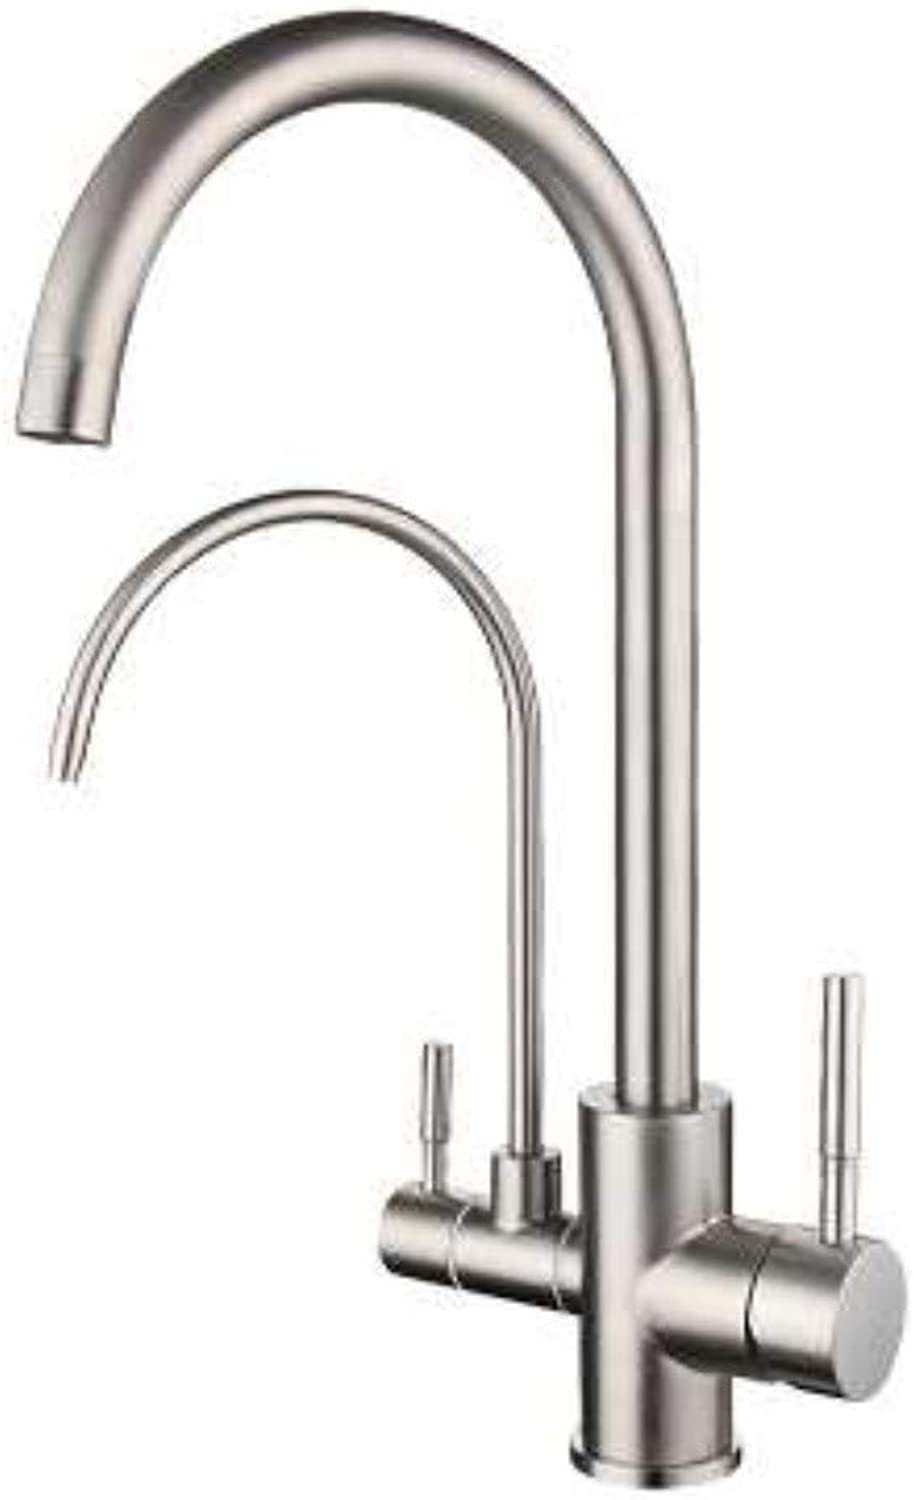 Kitchen Tap 3-Way Chrome Faucet for Cold Hot and Filtered Water.?for Osmosis Plants Drinking Water Systems? Kitchen Taps Kitchen Sink Mixer Taps Basin Tap